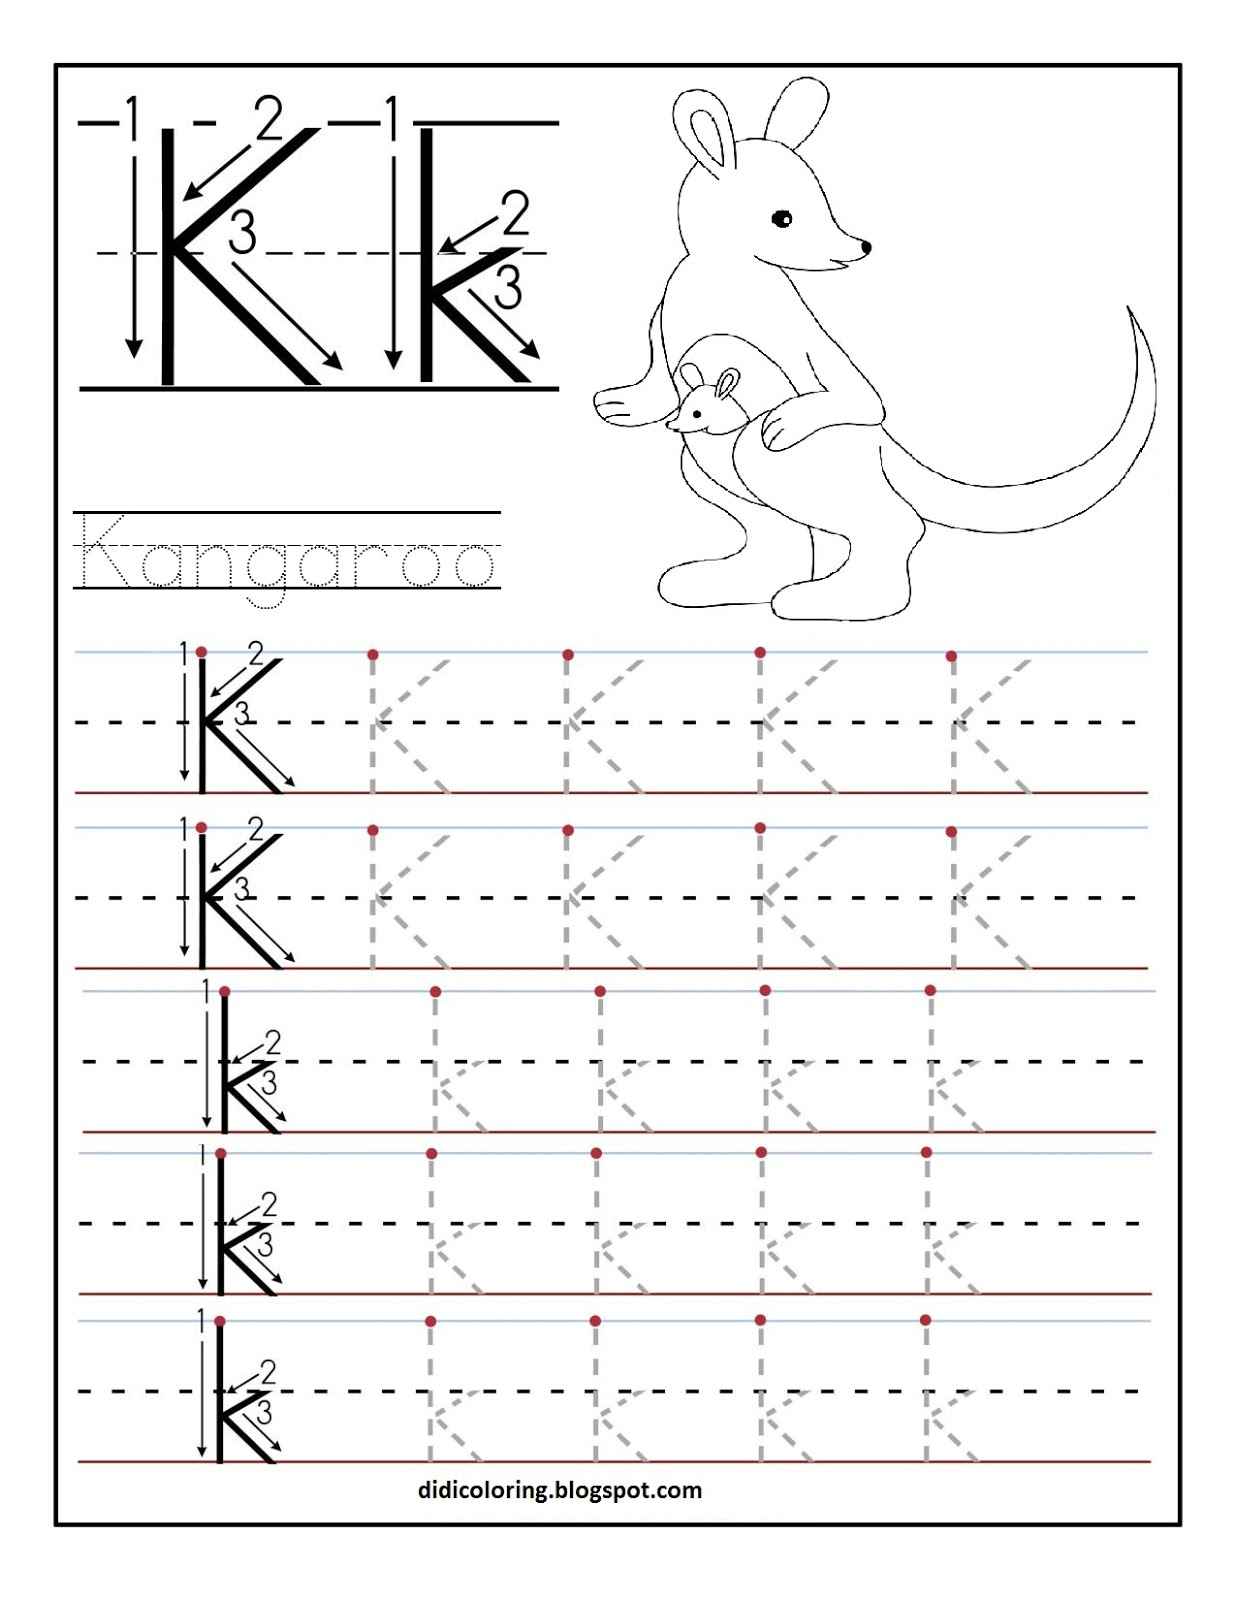 Peace writing activity sheets